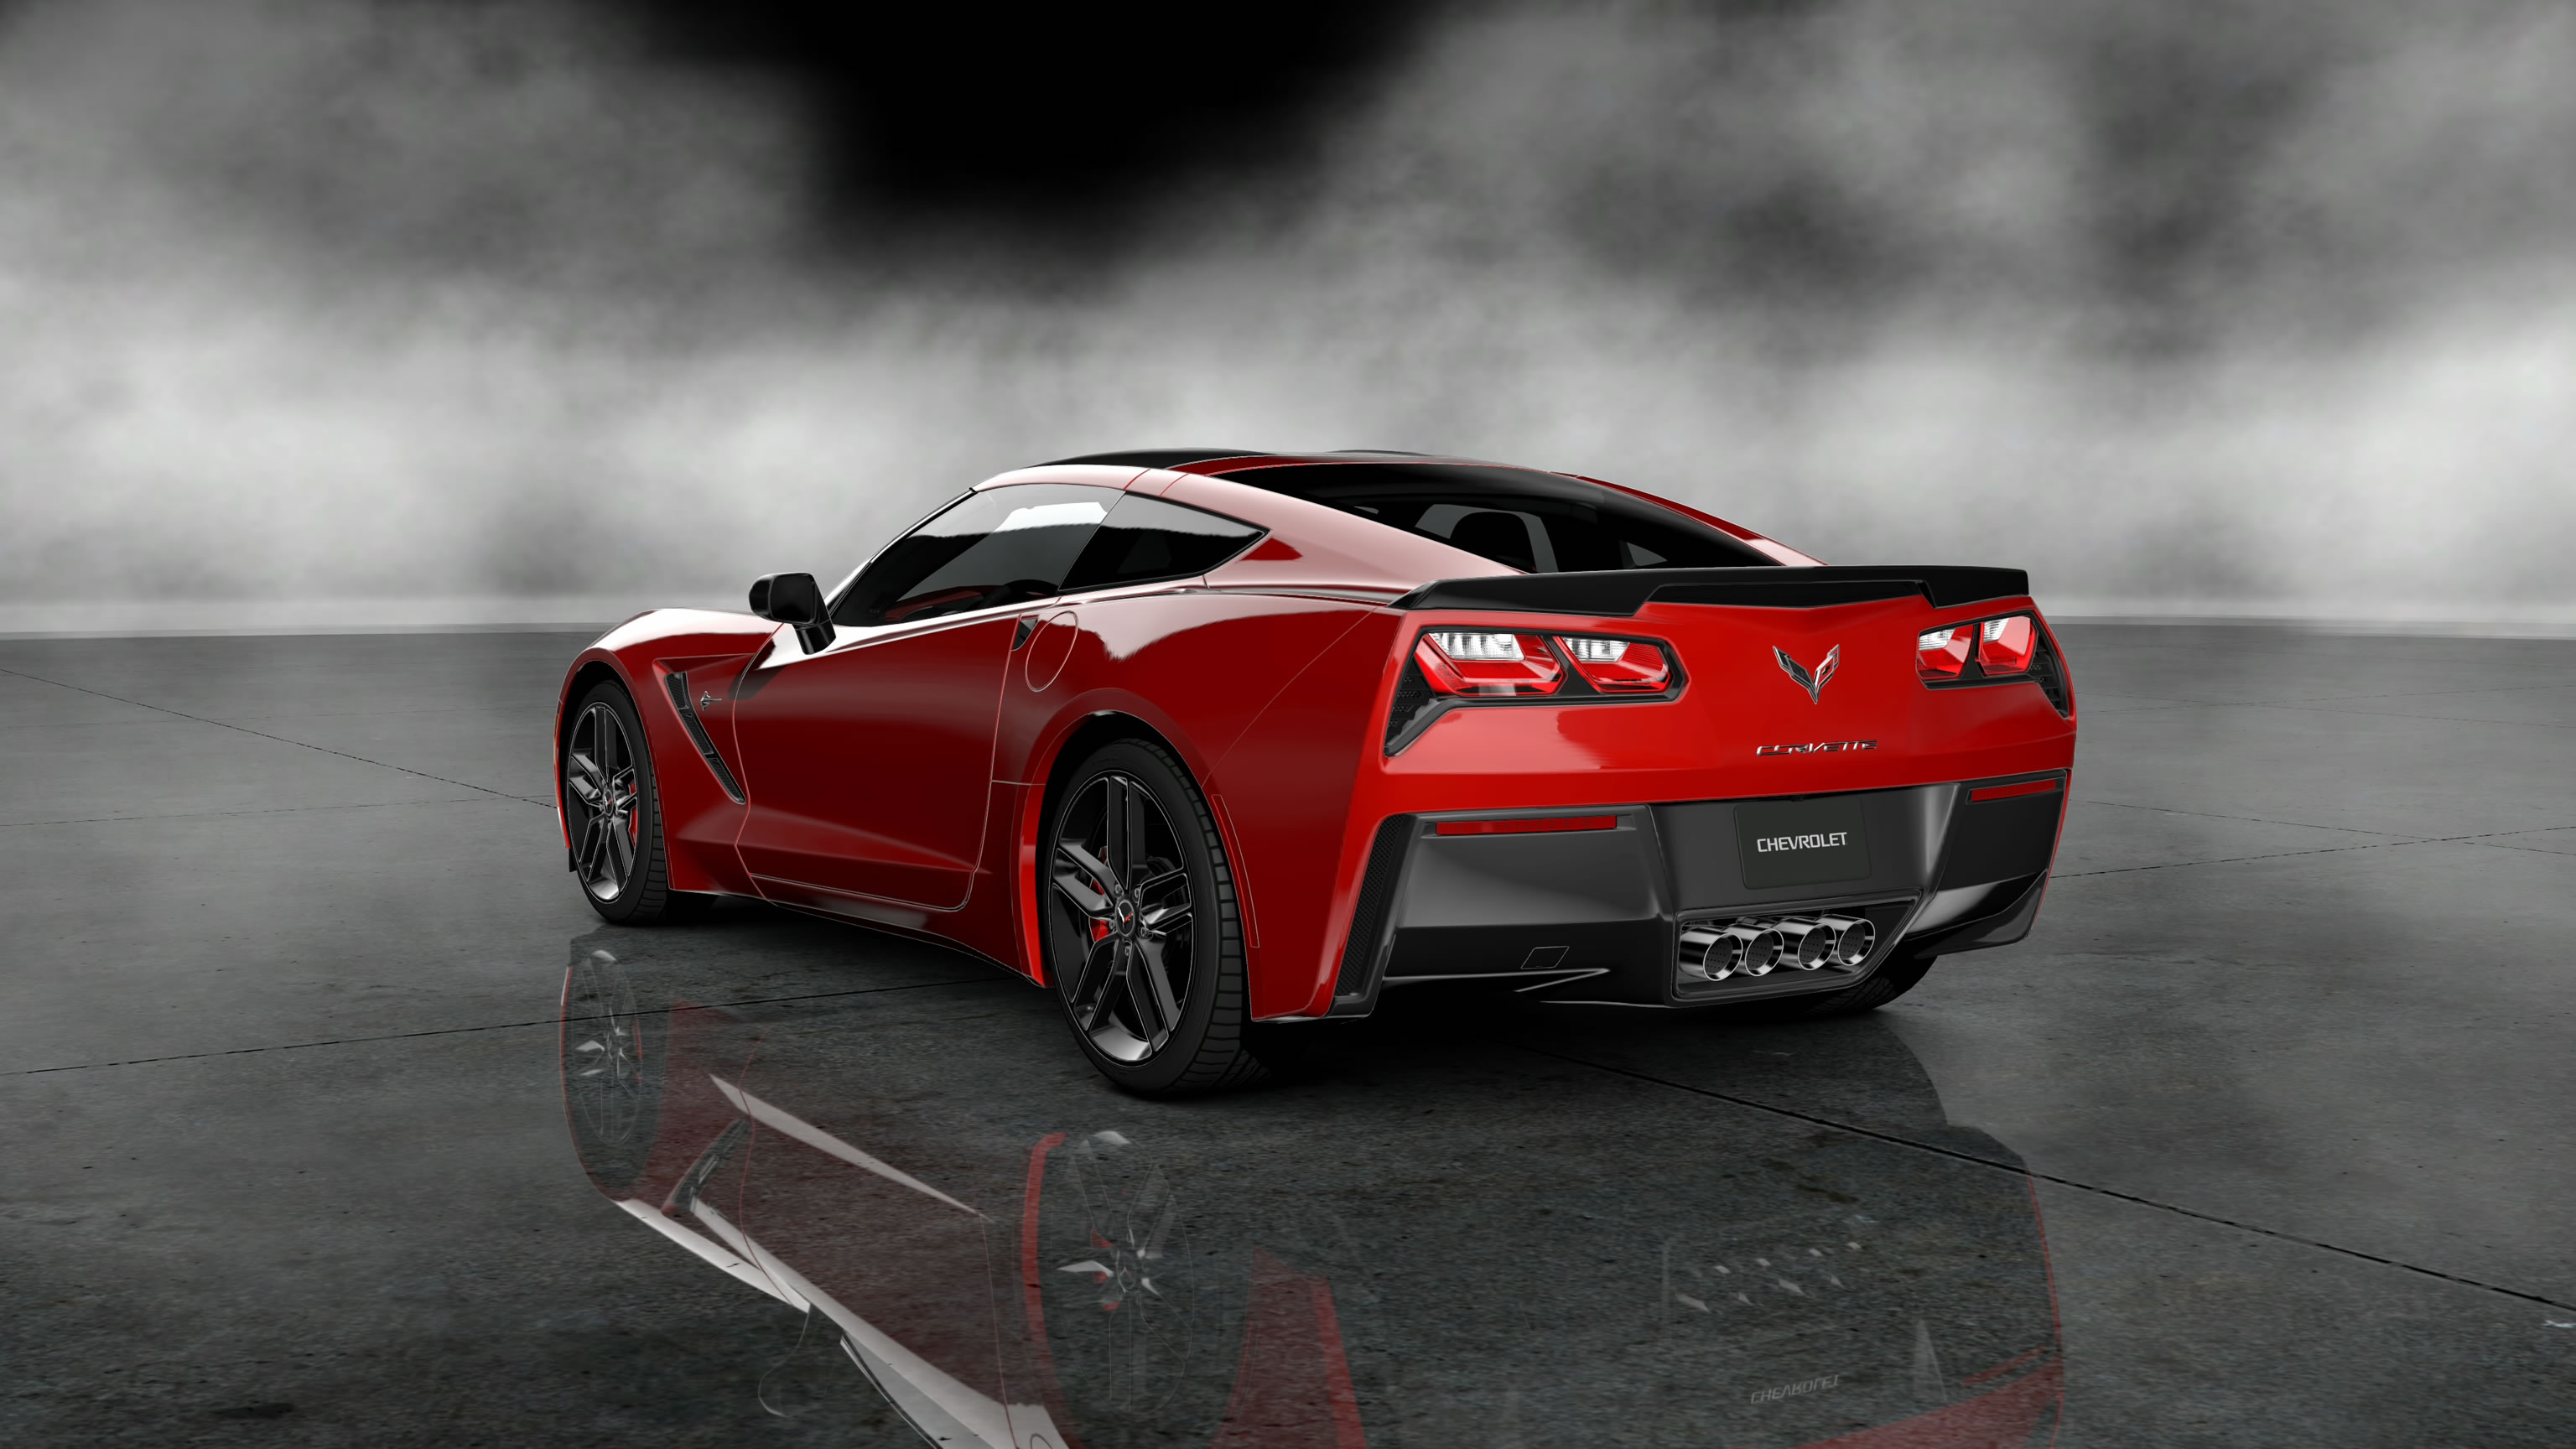 corvette c7 wallpapers Chevrolet Corvette C7 Chevrolet Corvette C7 3072x1728